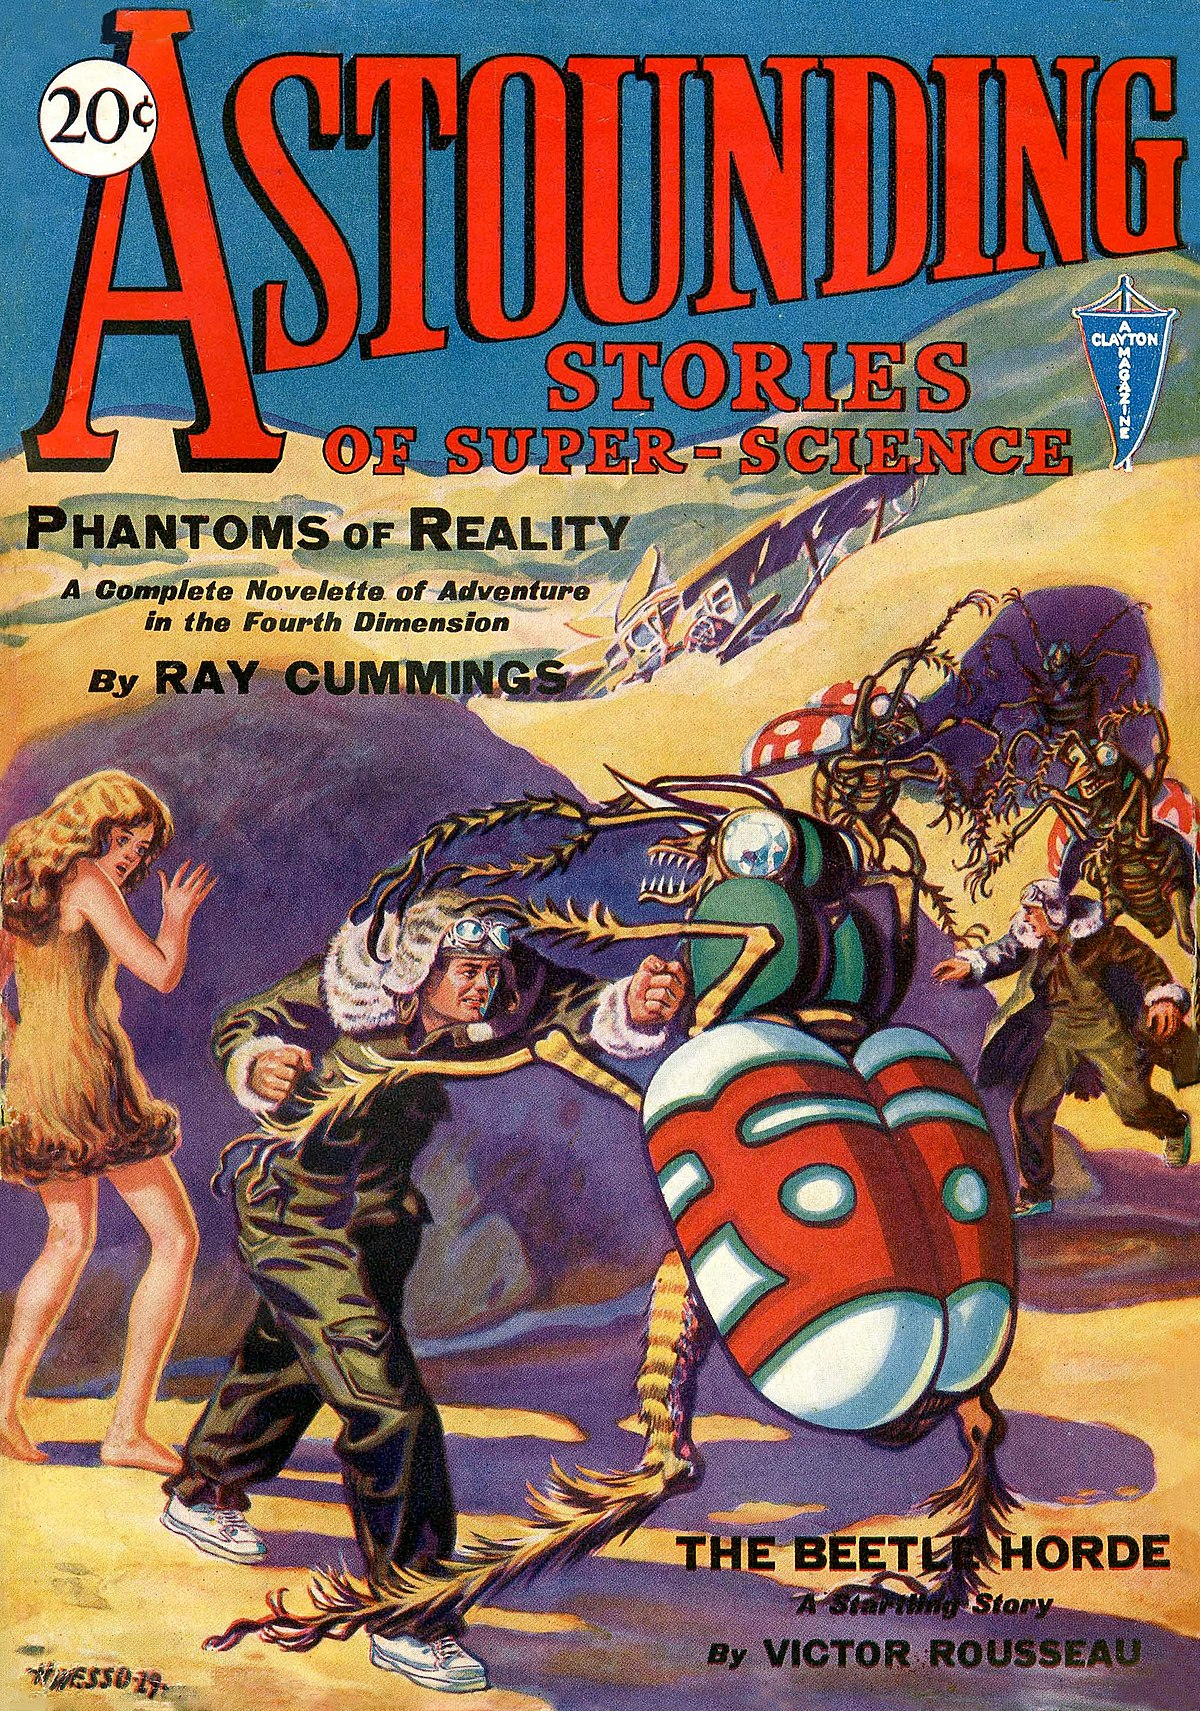 Analog Science Fiction and Fact - Wikipedia